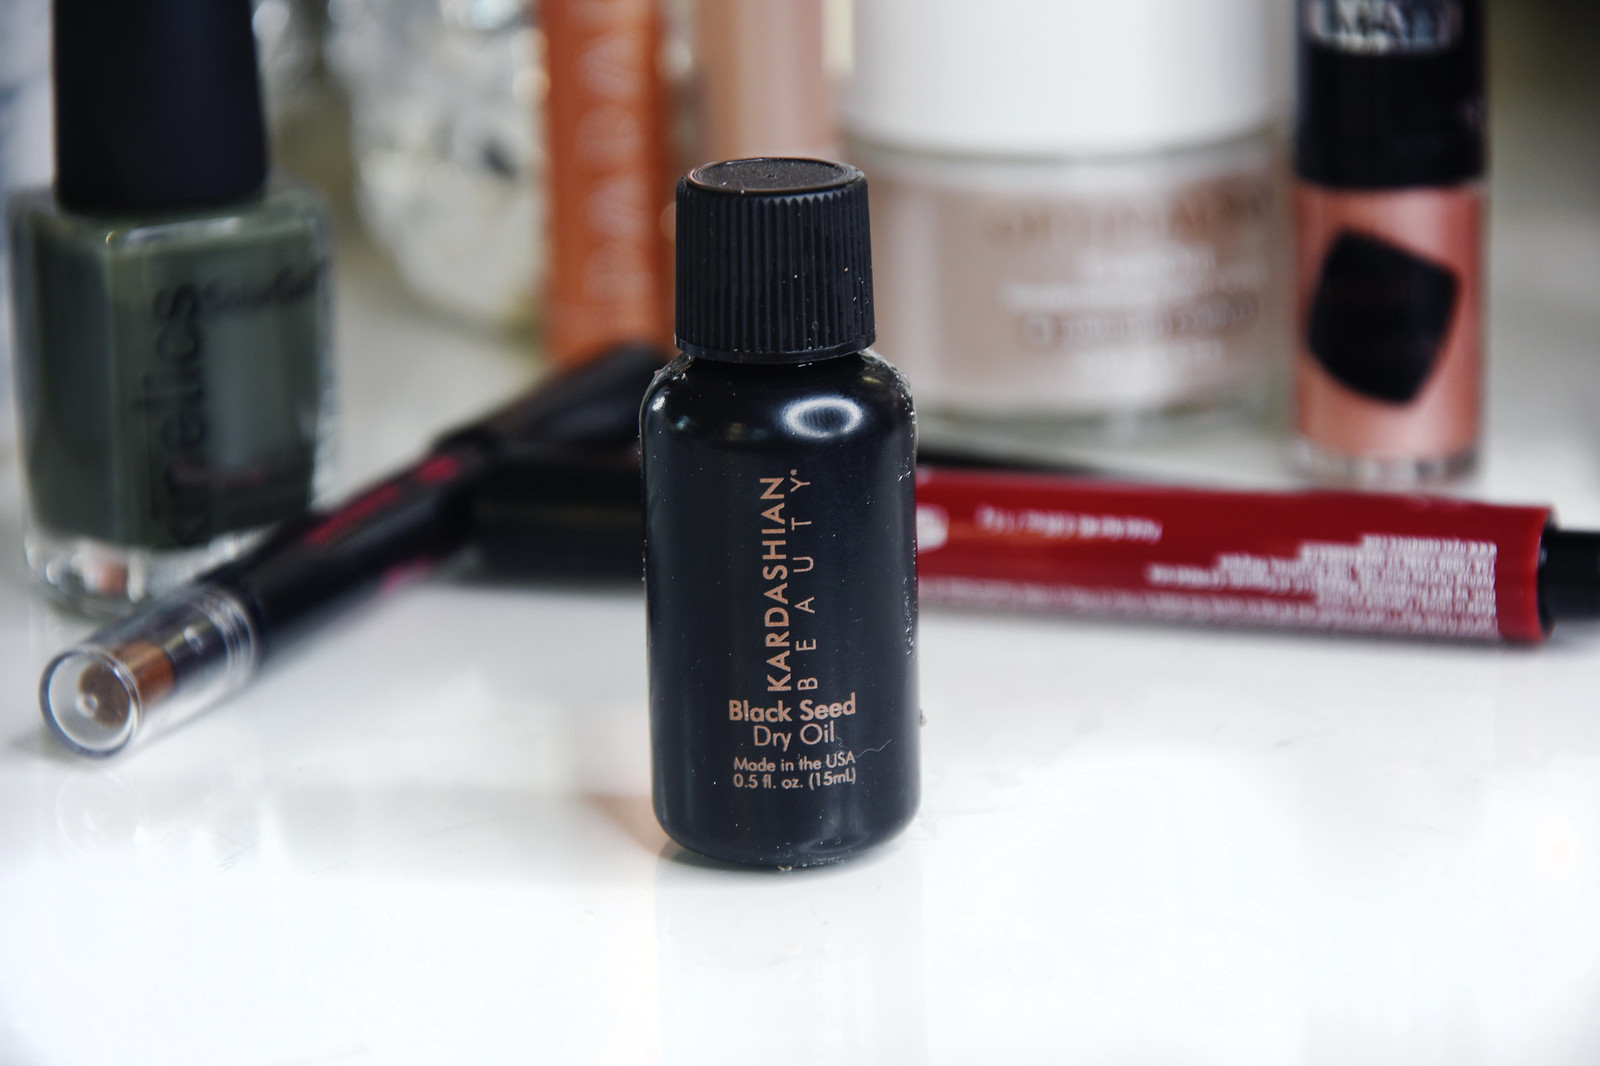 Kardashian beauty black seed dry oil review